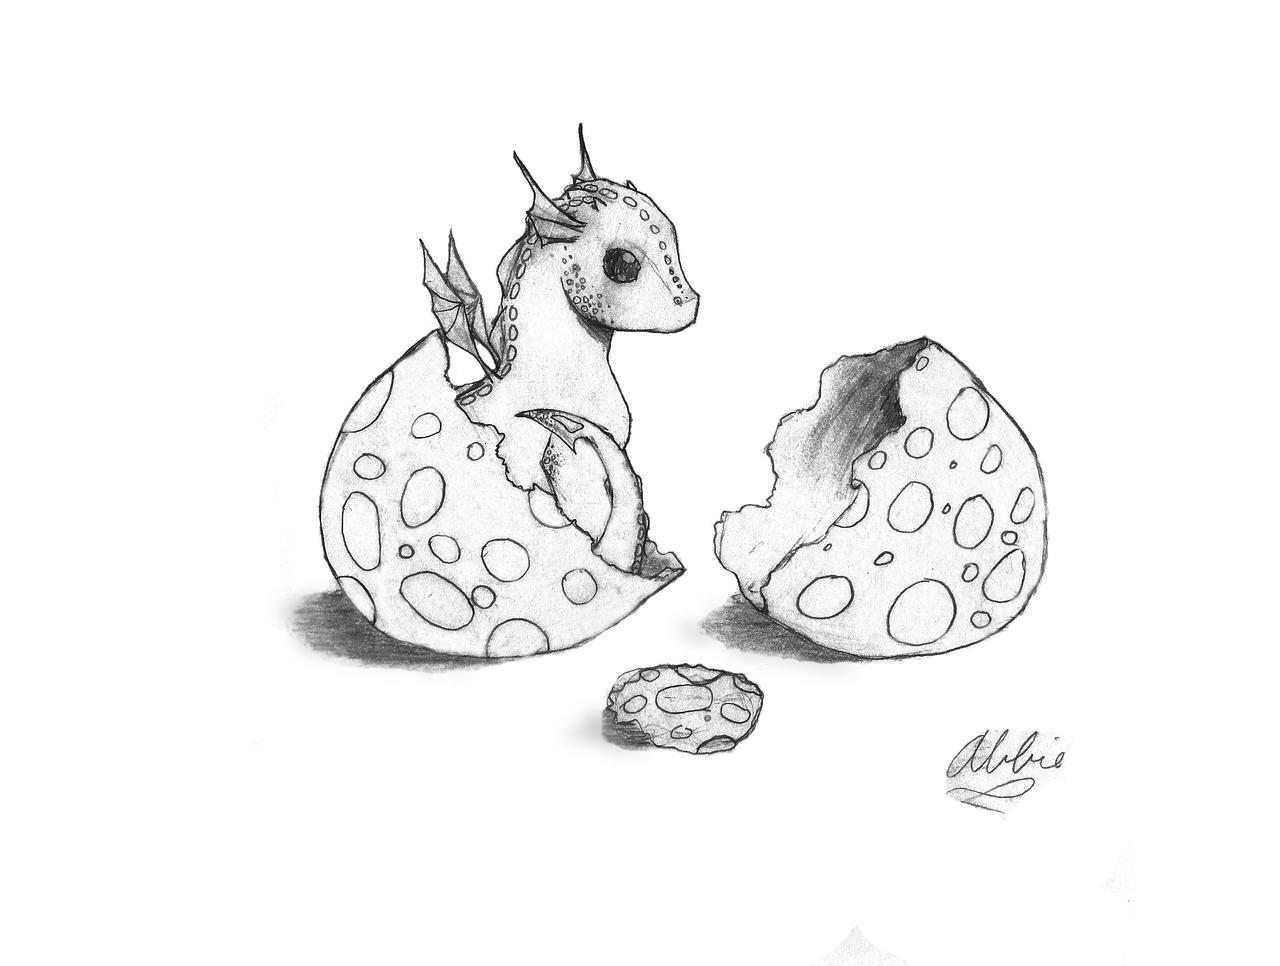 Baby Dragon and Egg by Znnai on DeviantArt